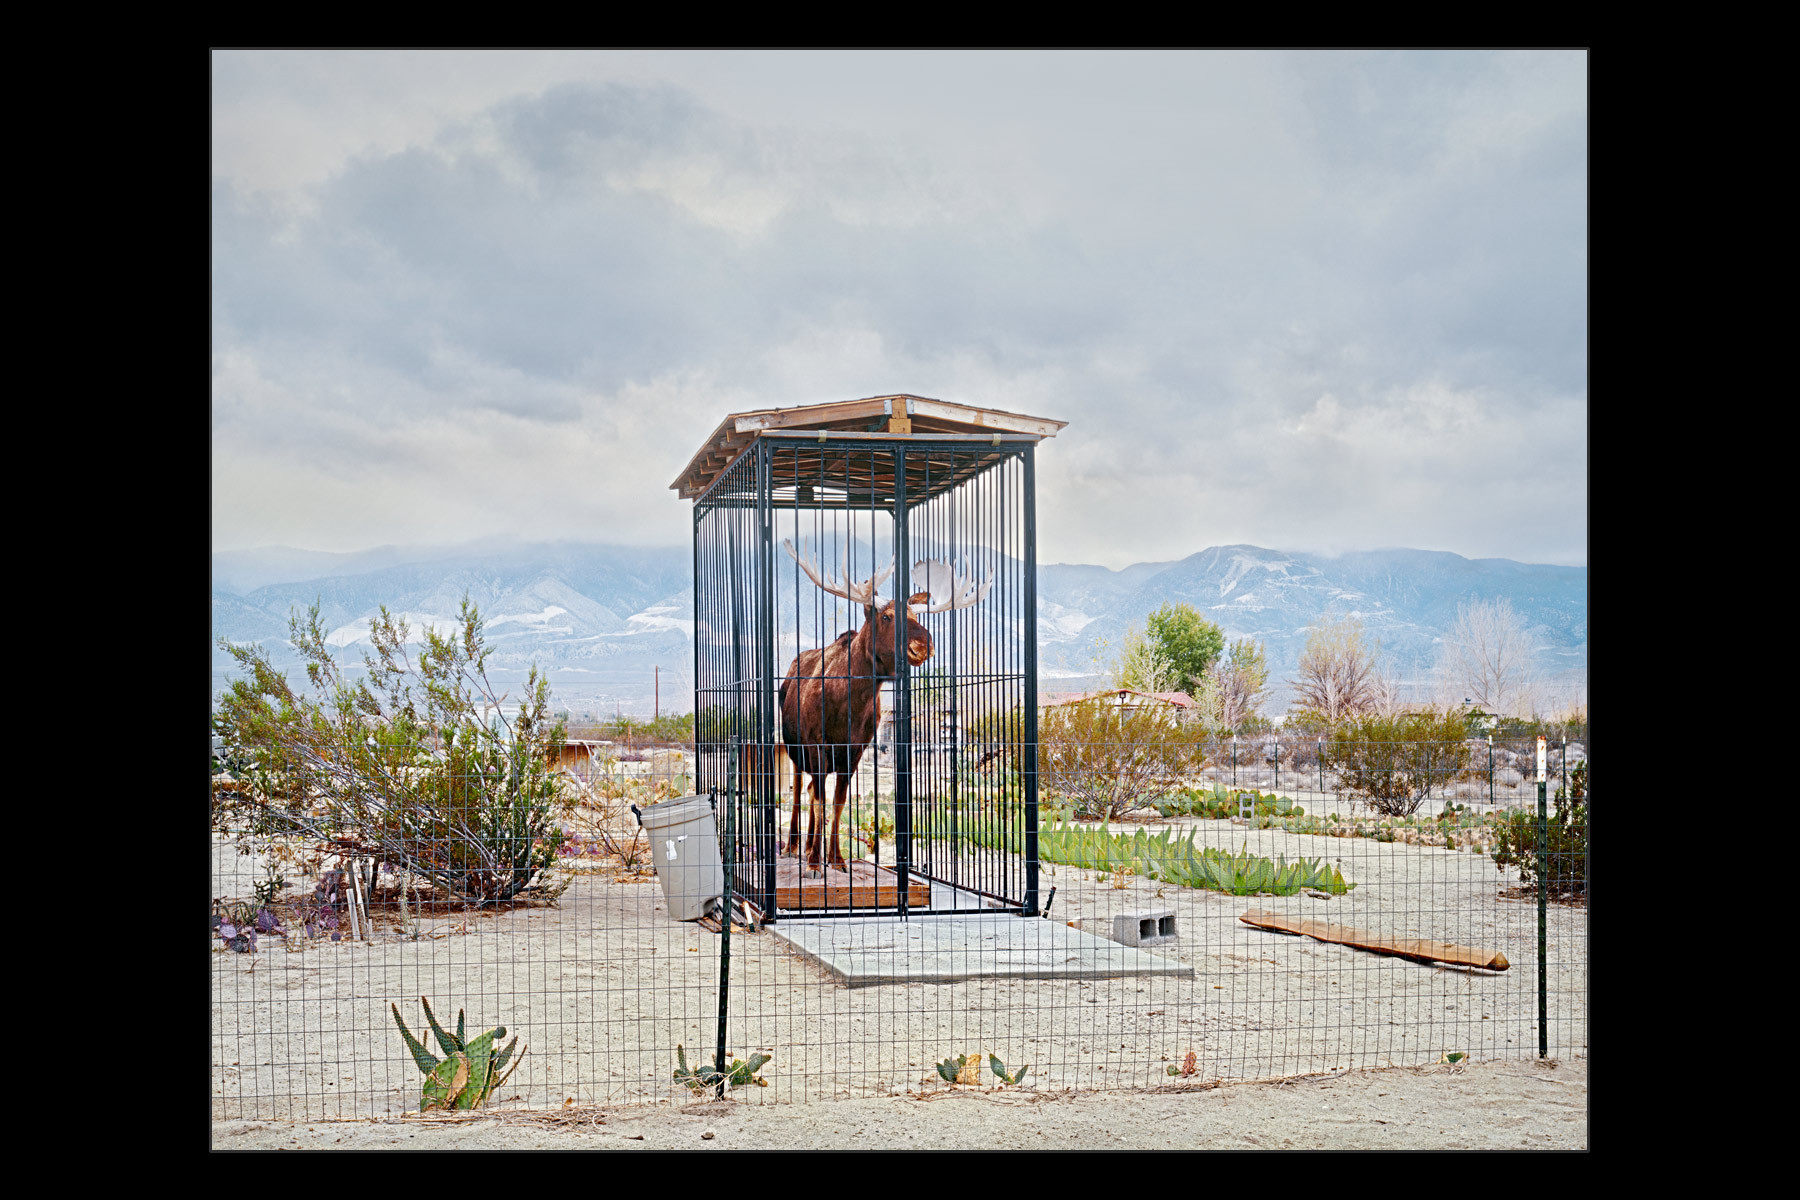 caged, stuffed moose, Lucerne Valley